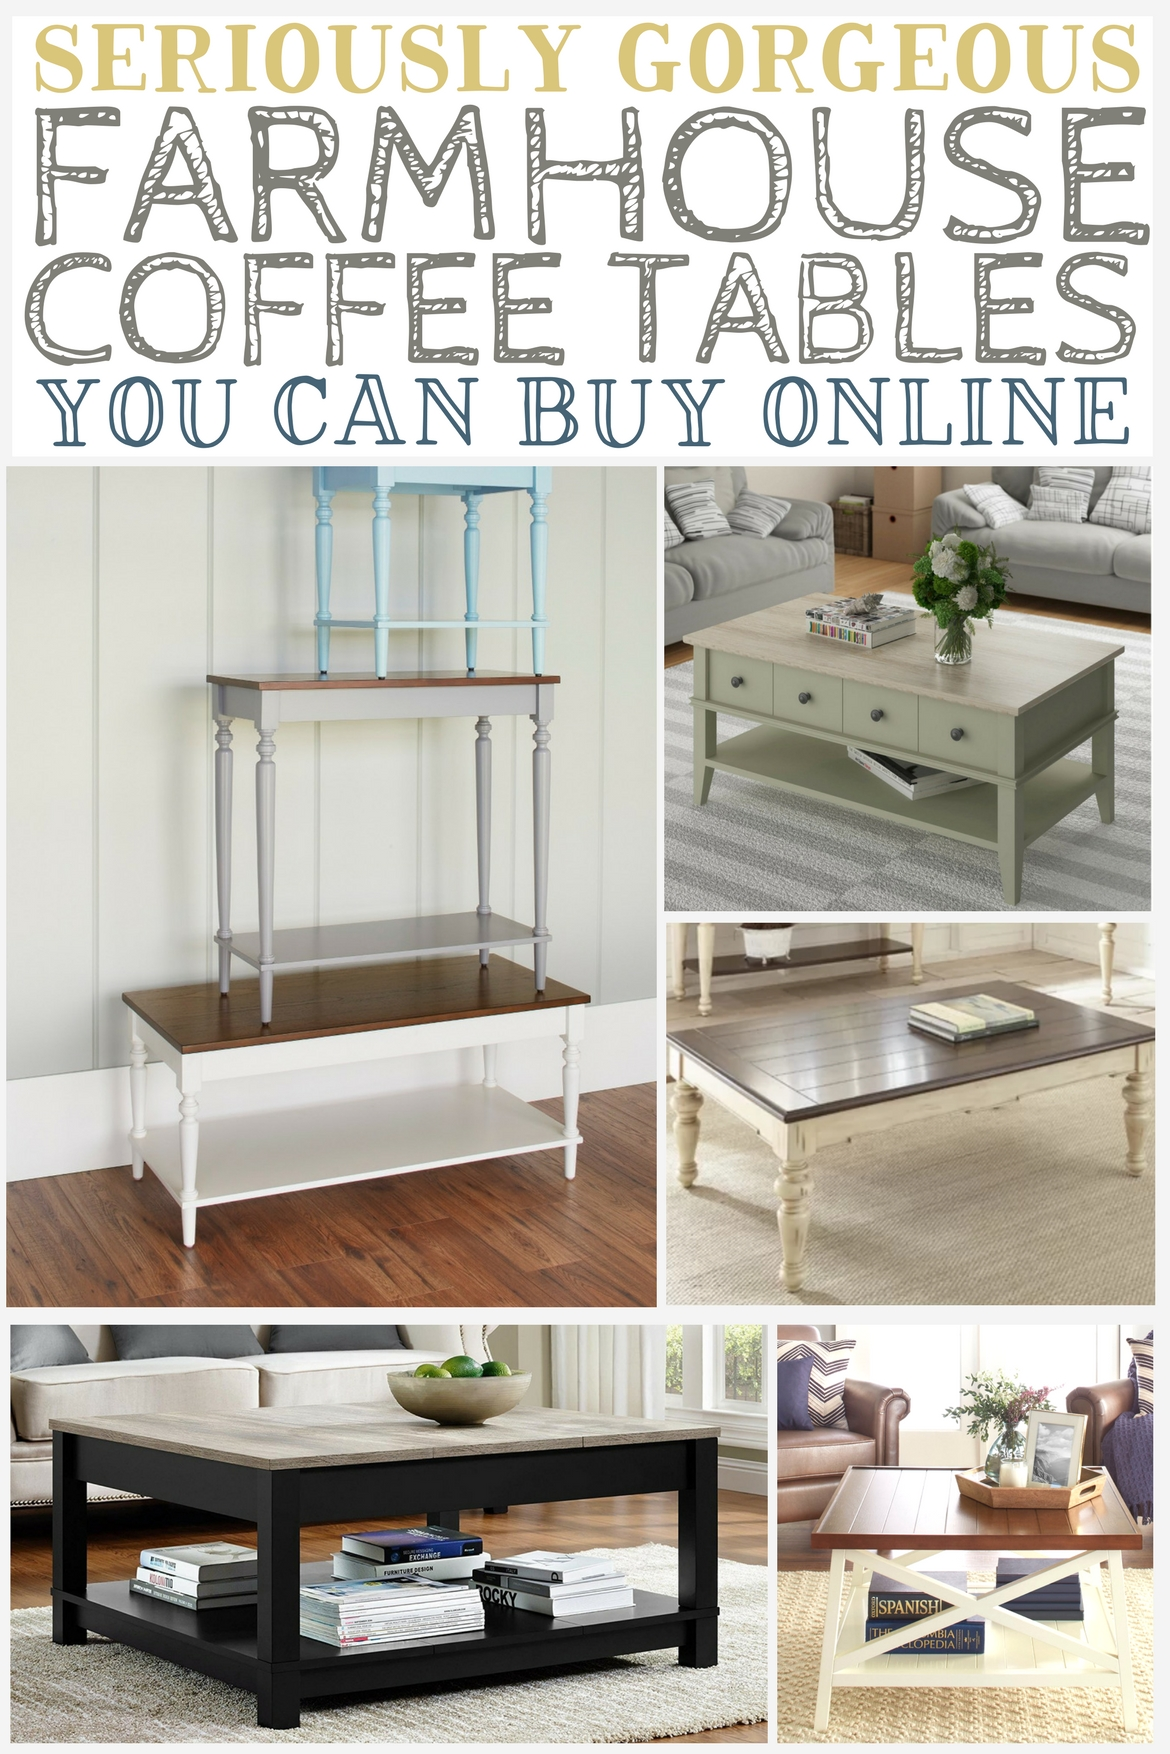 Seriously Gorgeous Farmhouse Coffee Tables You Can Buy Online   The  Weathered Fox